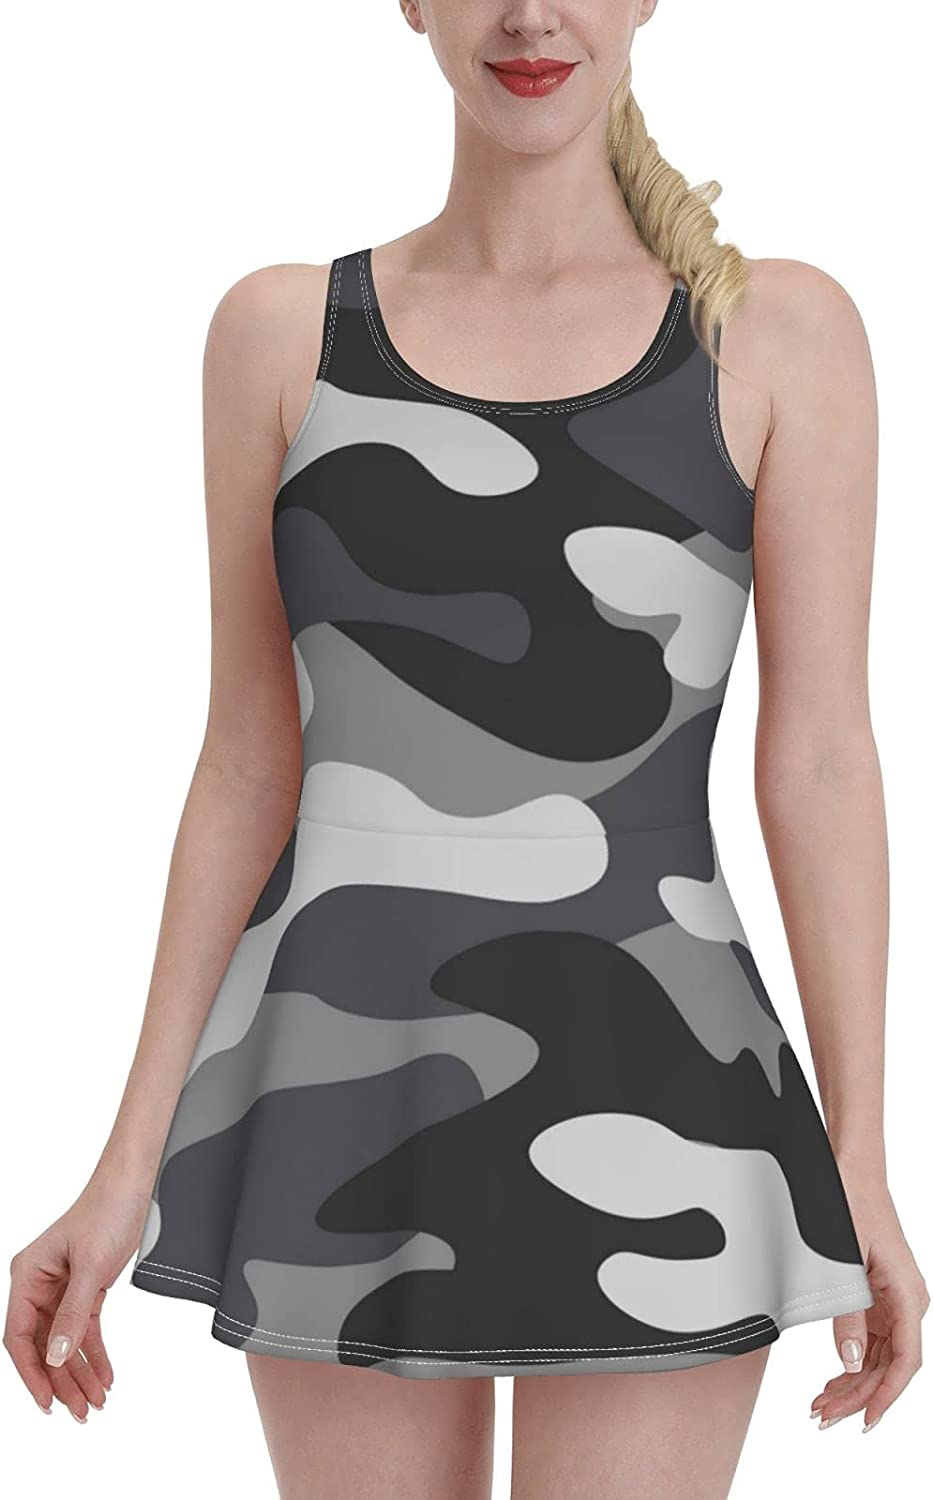 ZXZNC Black and White Camo Hunting Military Camouflage Swimdress Swimsuits for Women Tumm